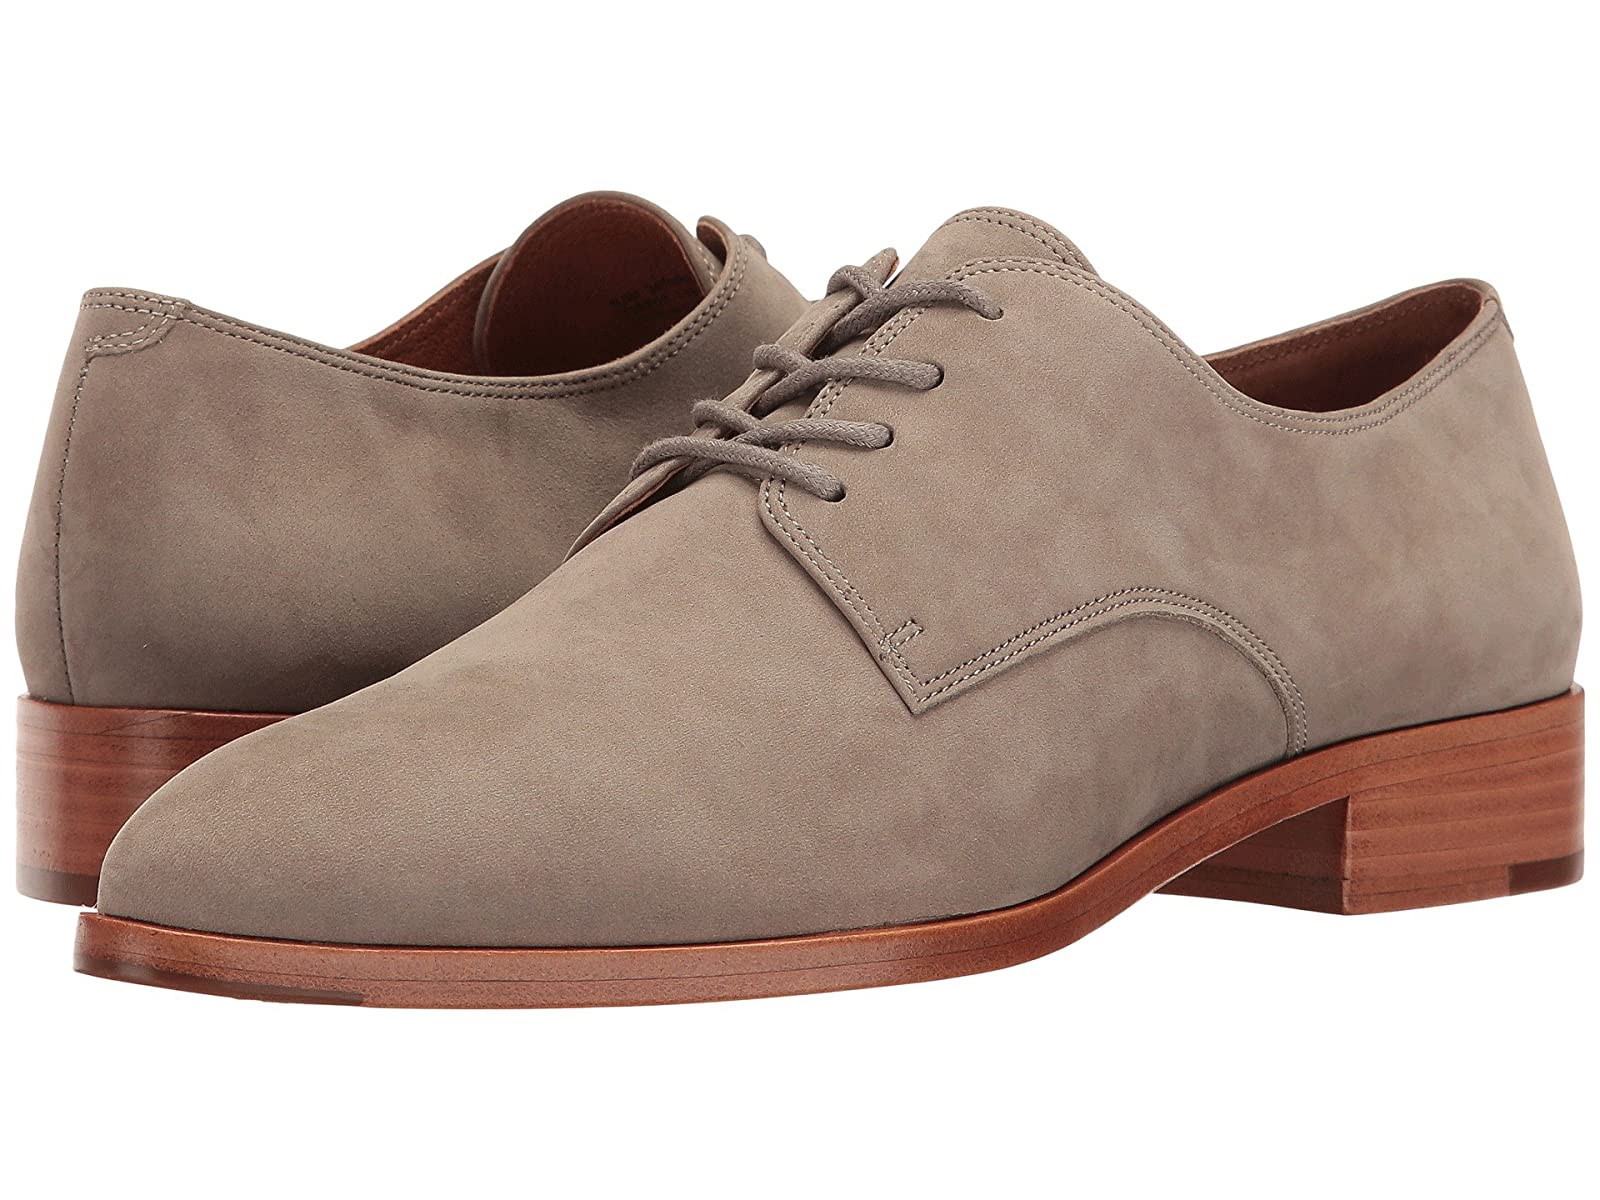 Frye Erica OxfordCheap and distinctive eye-catching shoes